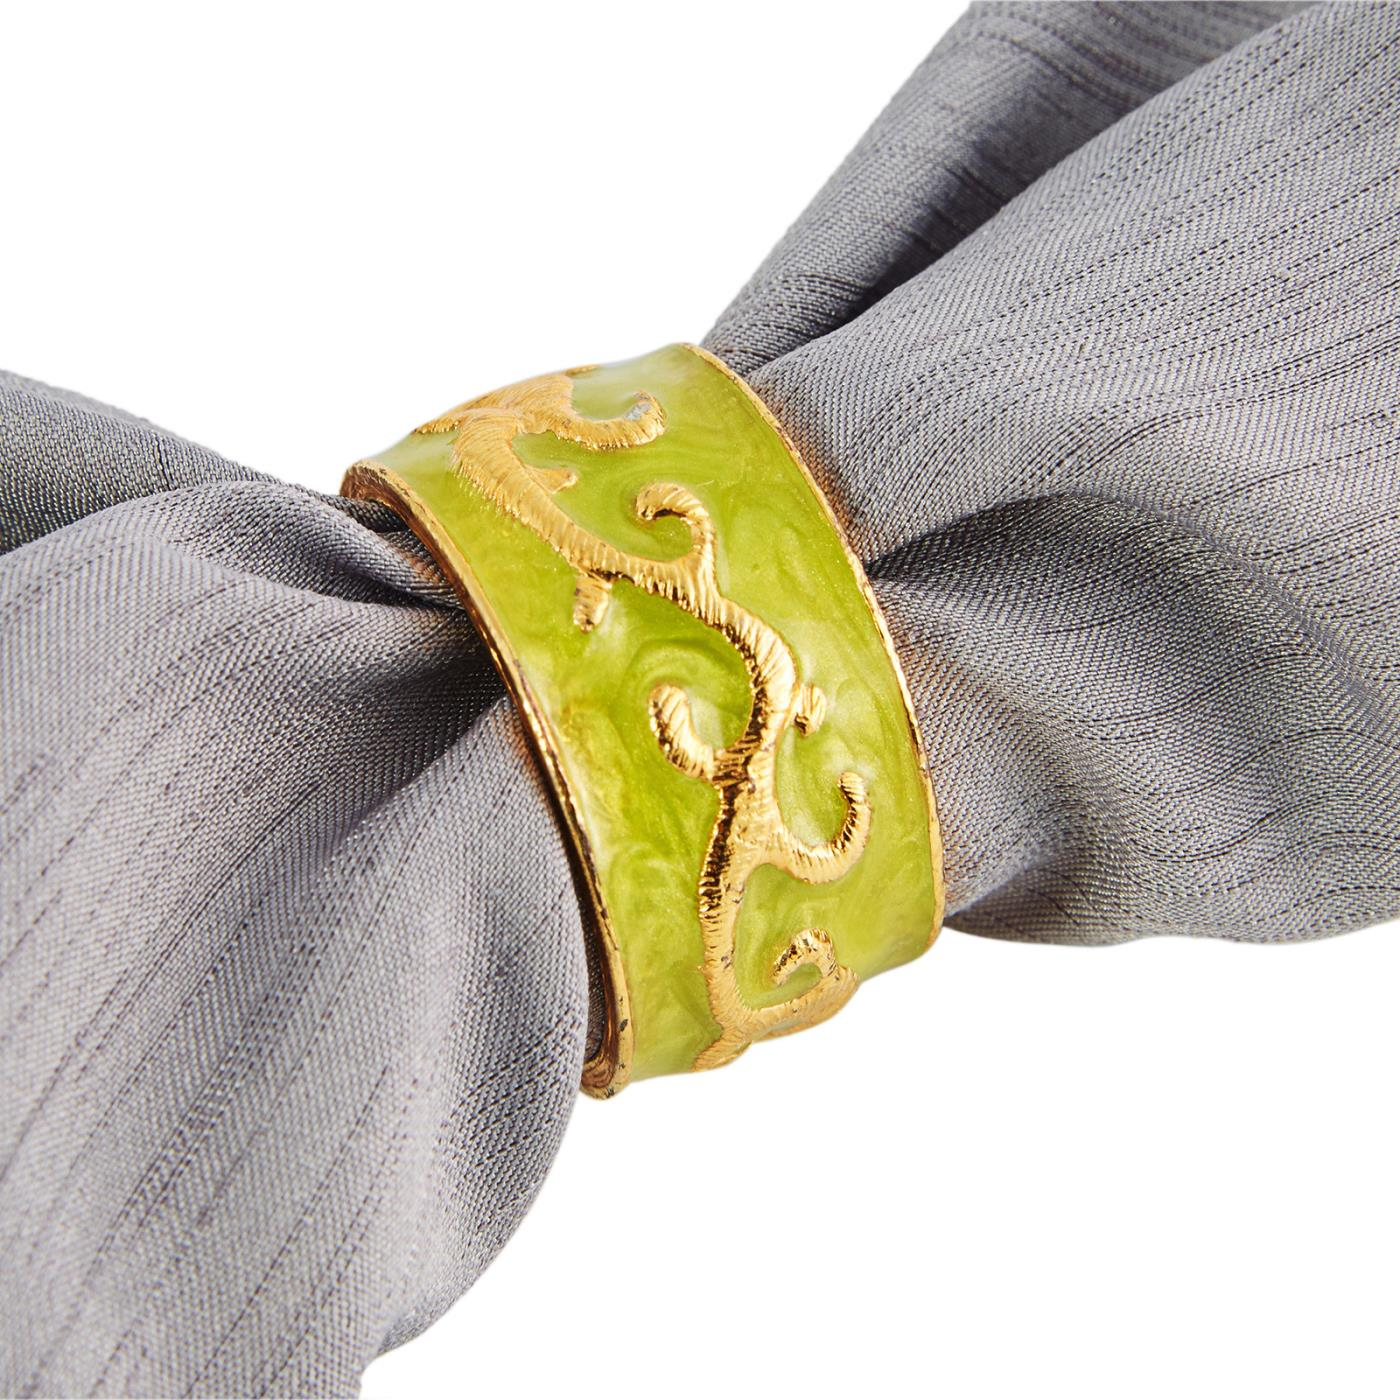 green and gold napkin ring on grey napkin